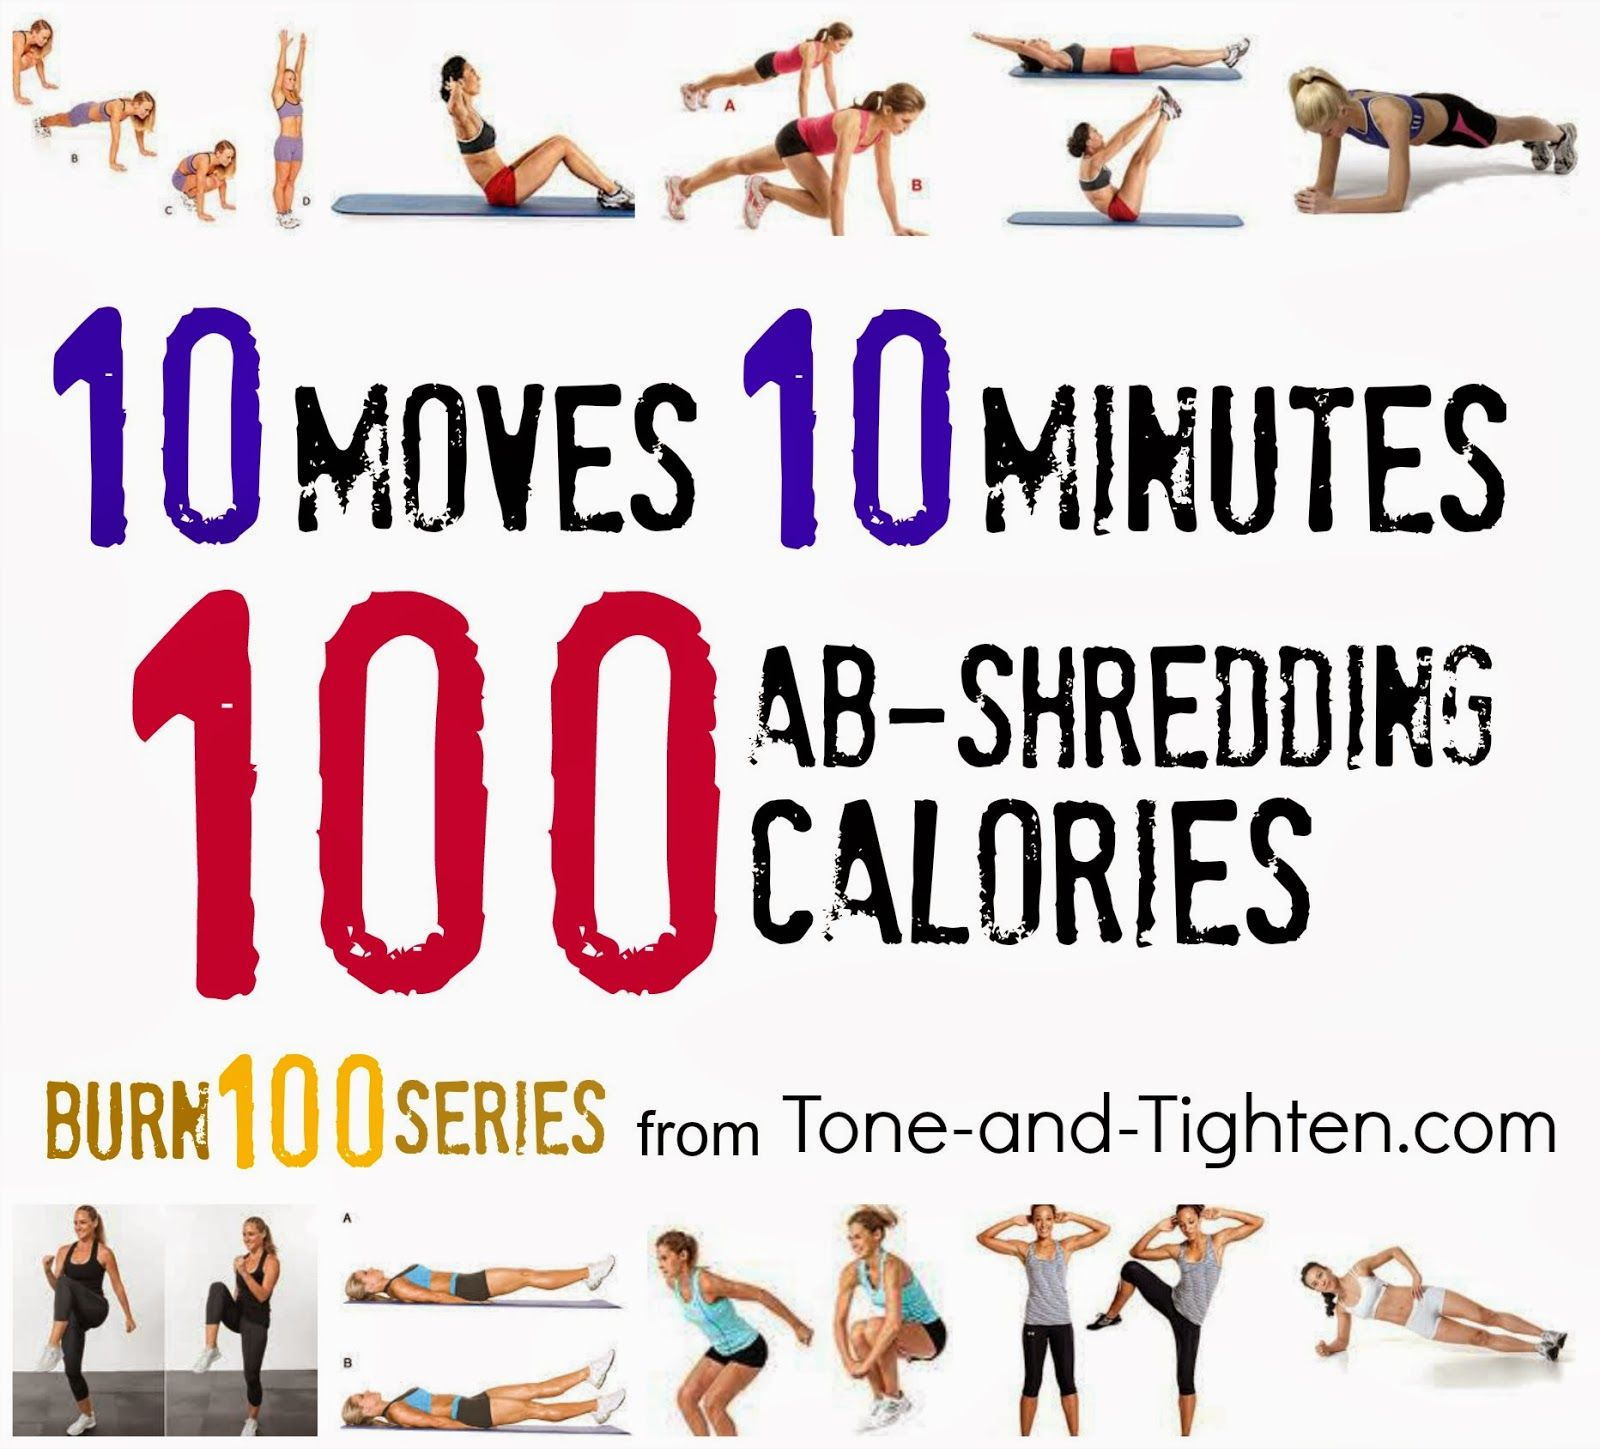 Burn calories in minutes with this killer ab workout from